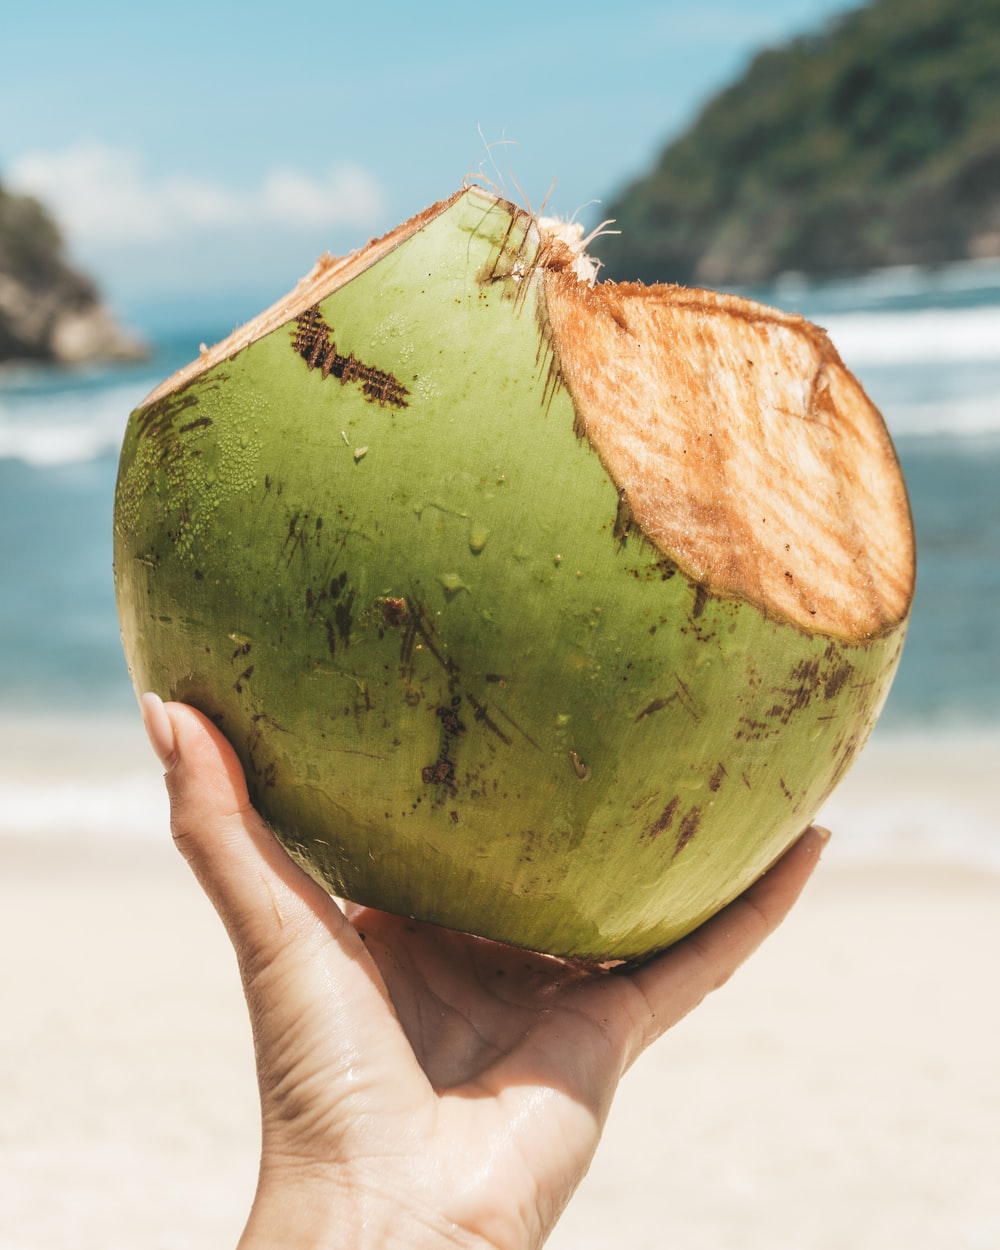 person holding green coconut fruit